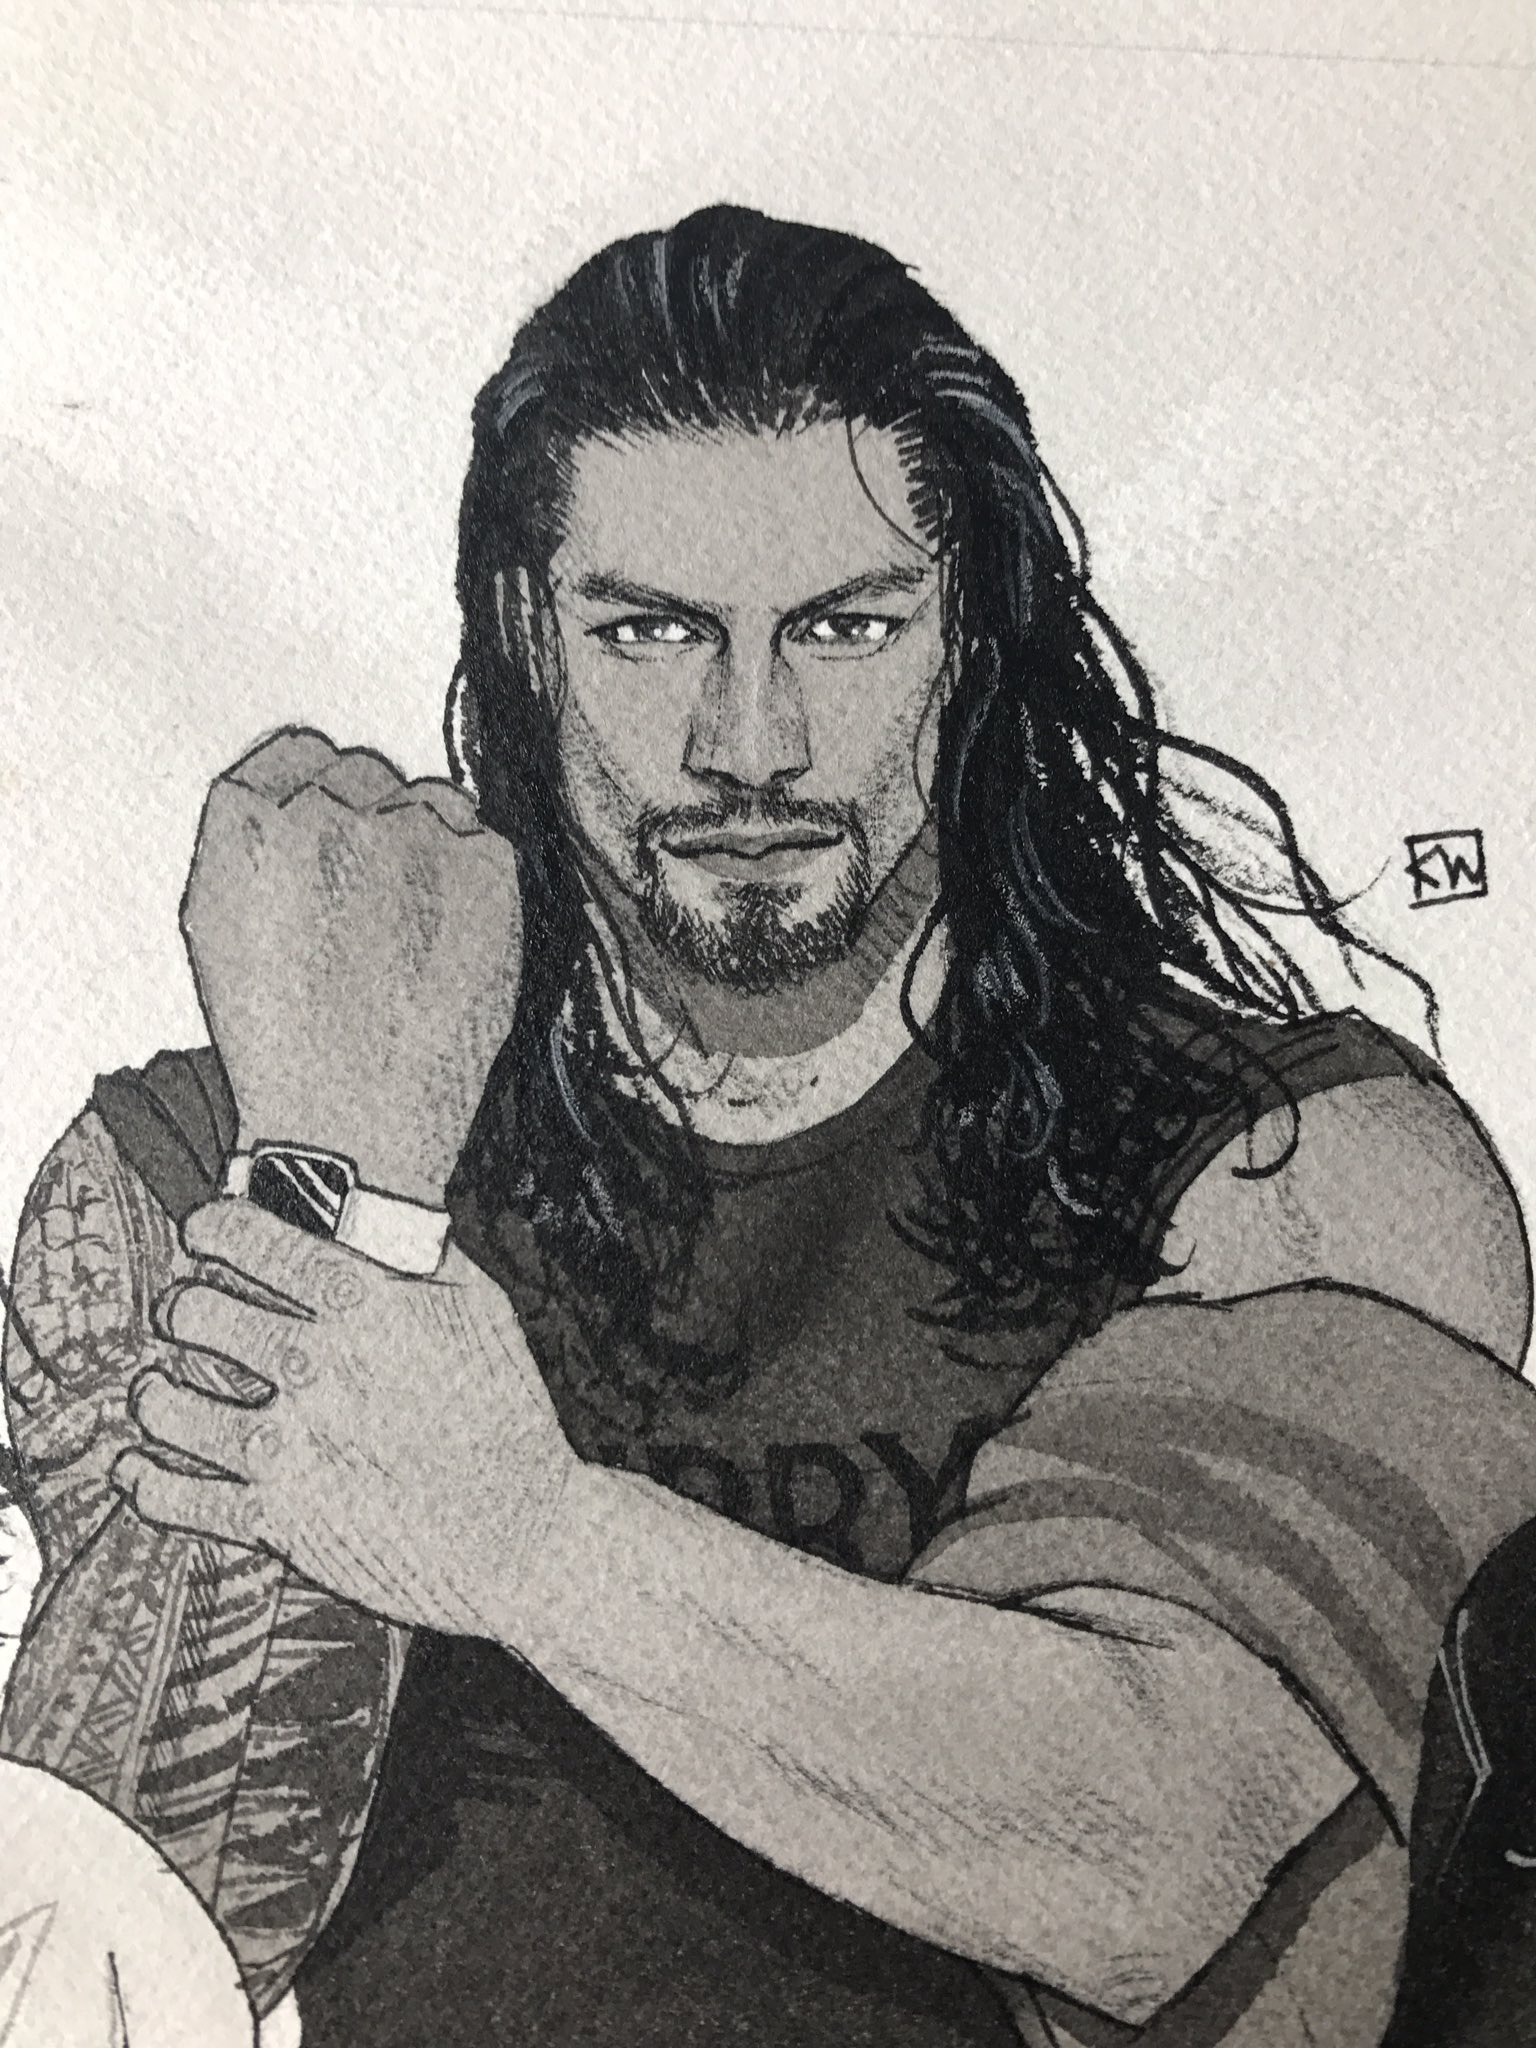 Pin By Thiagosantinoalonso On We Own This Business Roman Reigns Drawing Roman Reigns Roman Reings